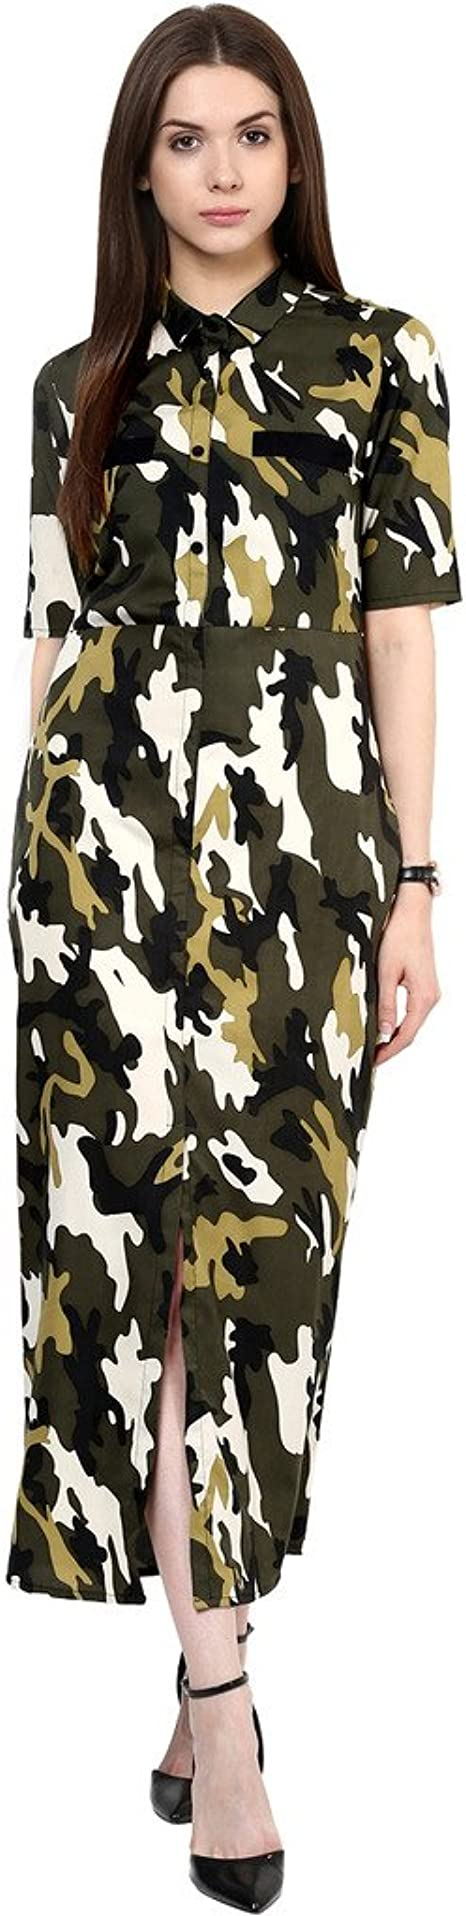 Zima Leto Military Shirt Maxi Dress Women's Dresses at amazon